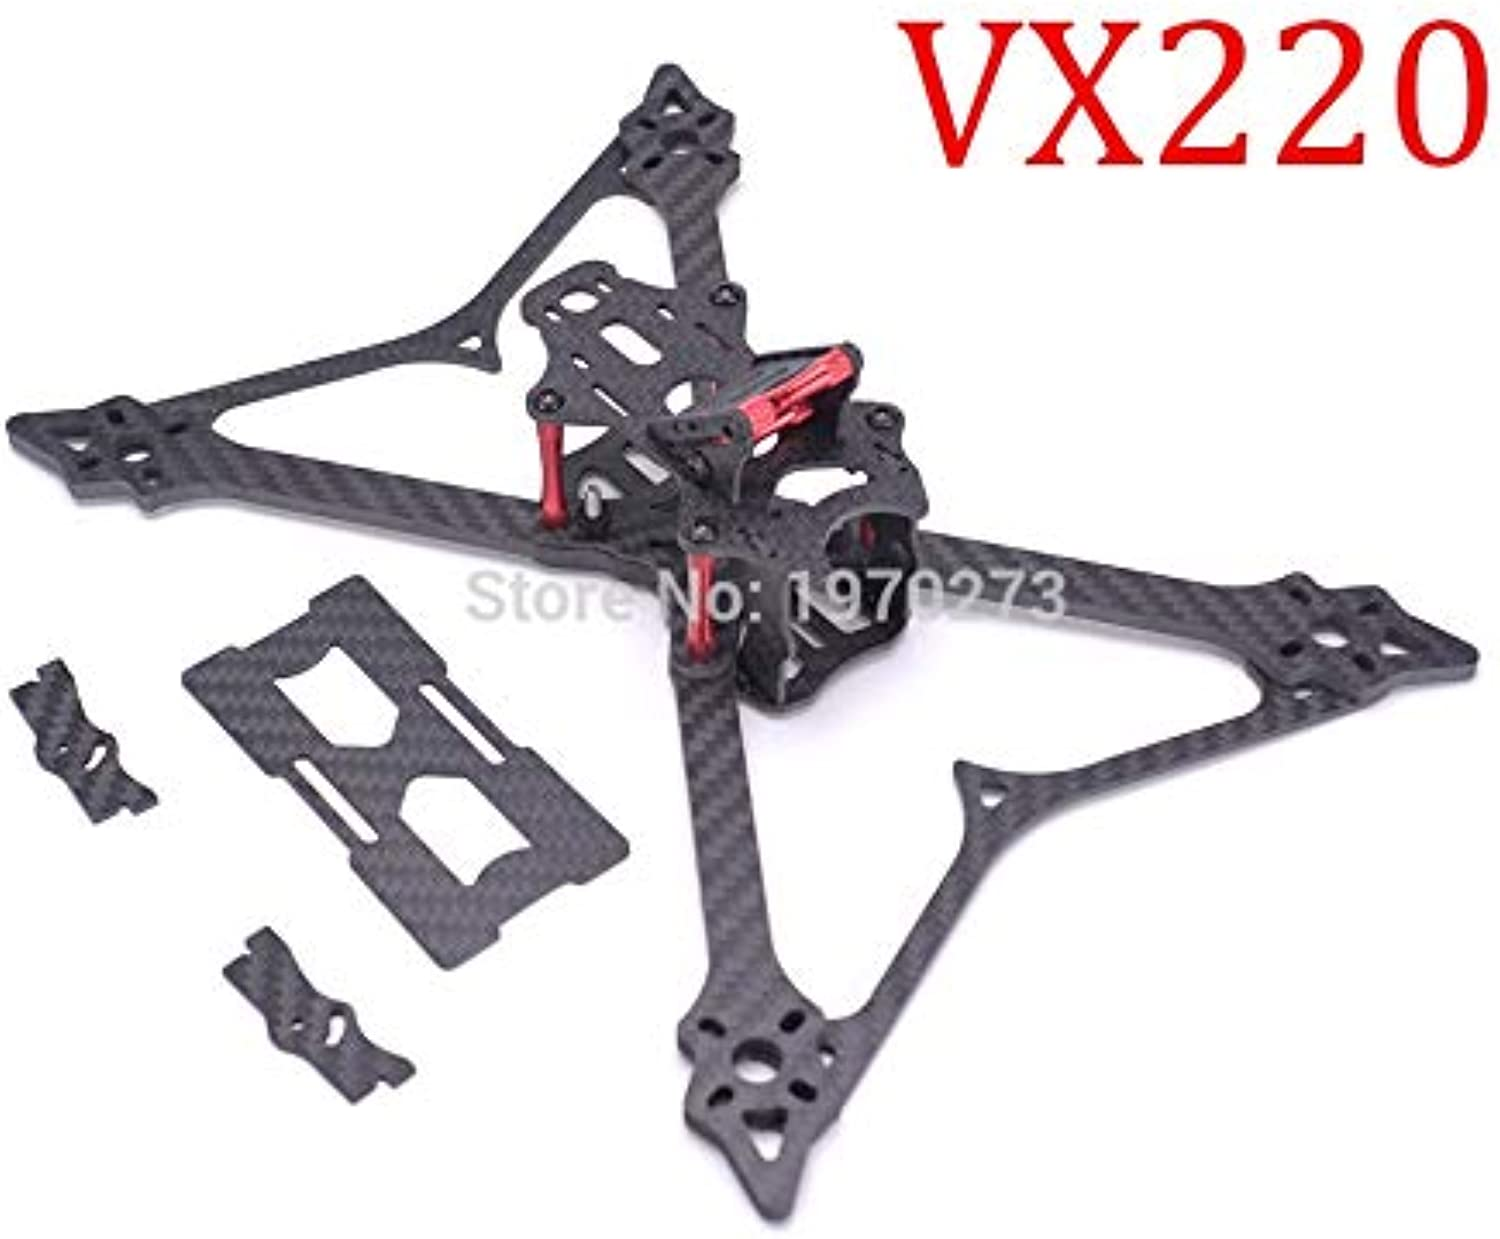 Laliva VX220 220mm Carbon Fiber Quadcopter Frame Kit Mini Four Axis Multi FPV Racing Drone with 4mm Thickness arm for QAVX 210 VX210